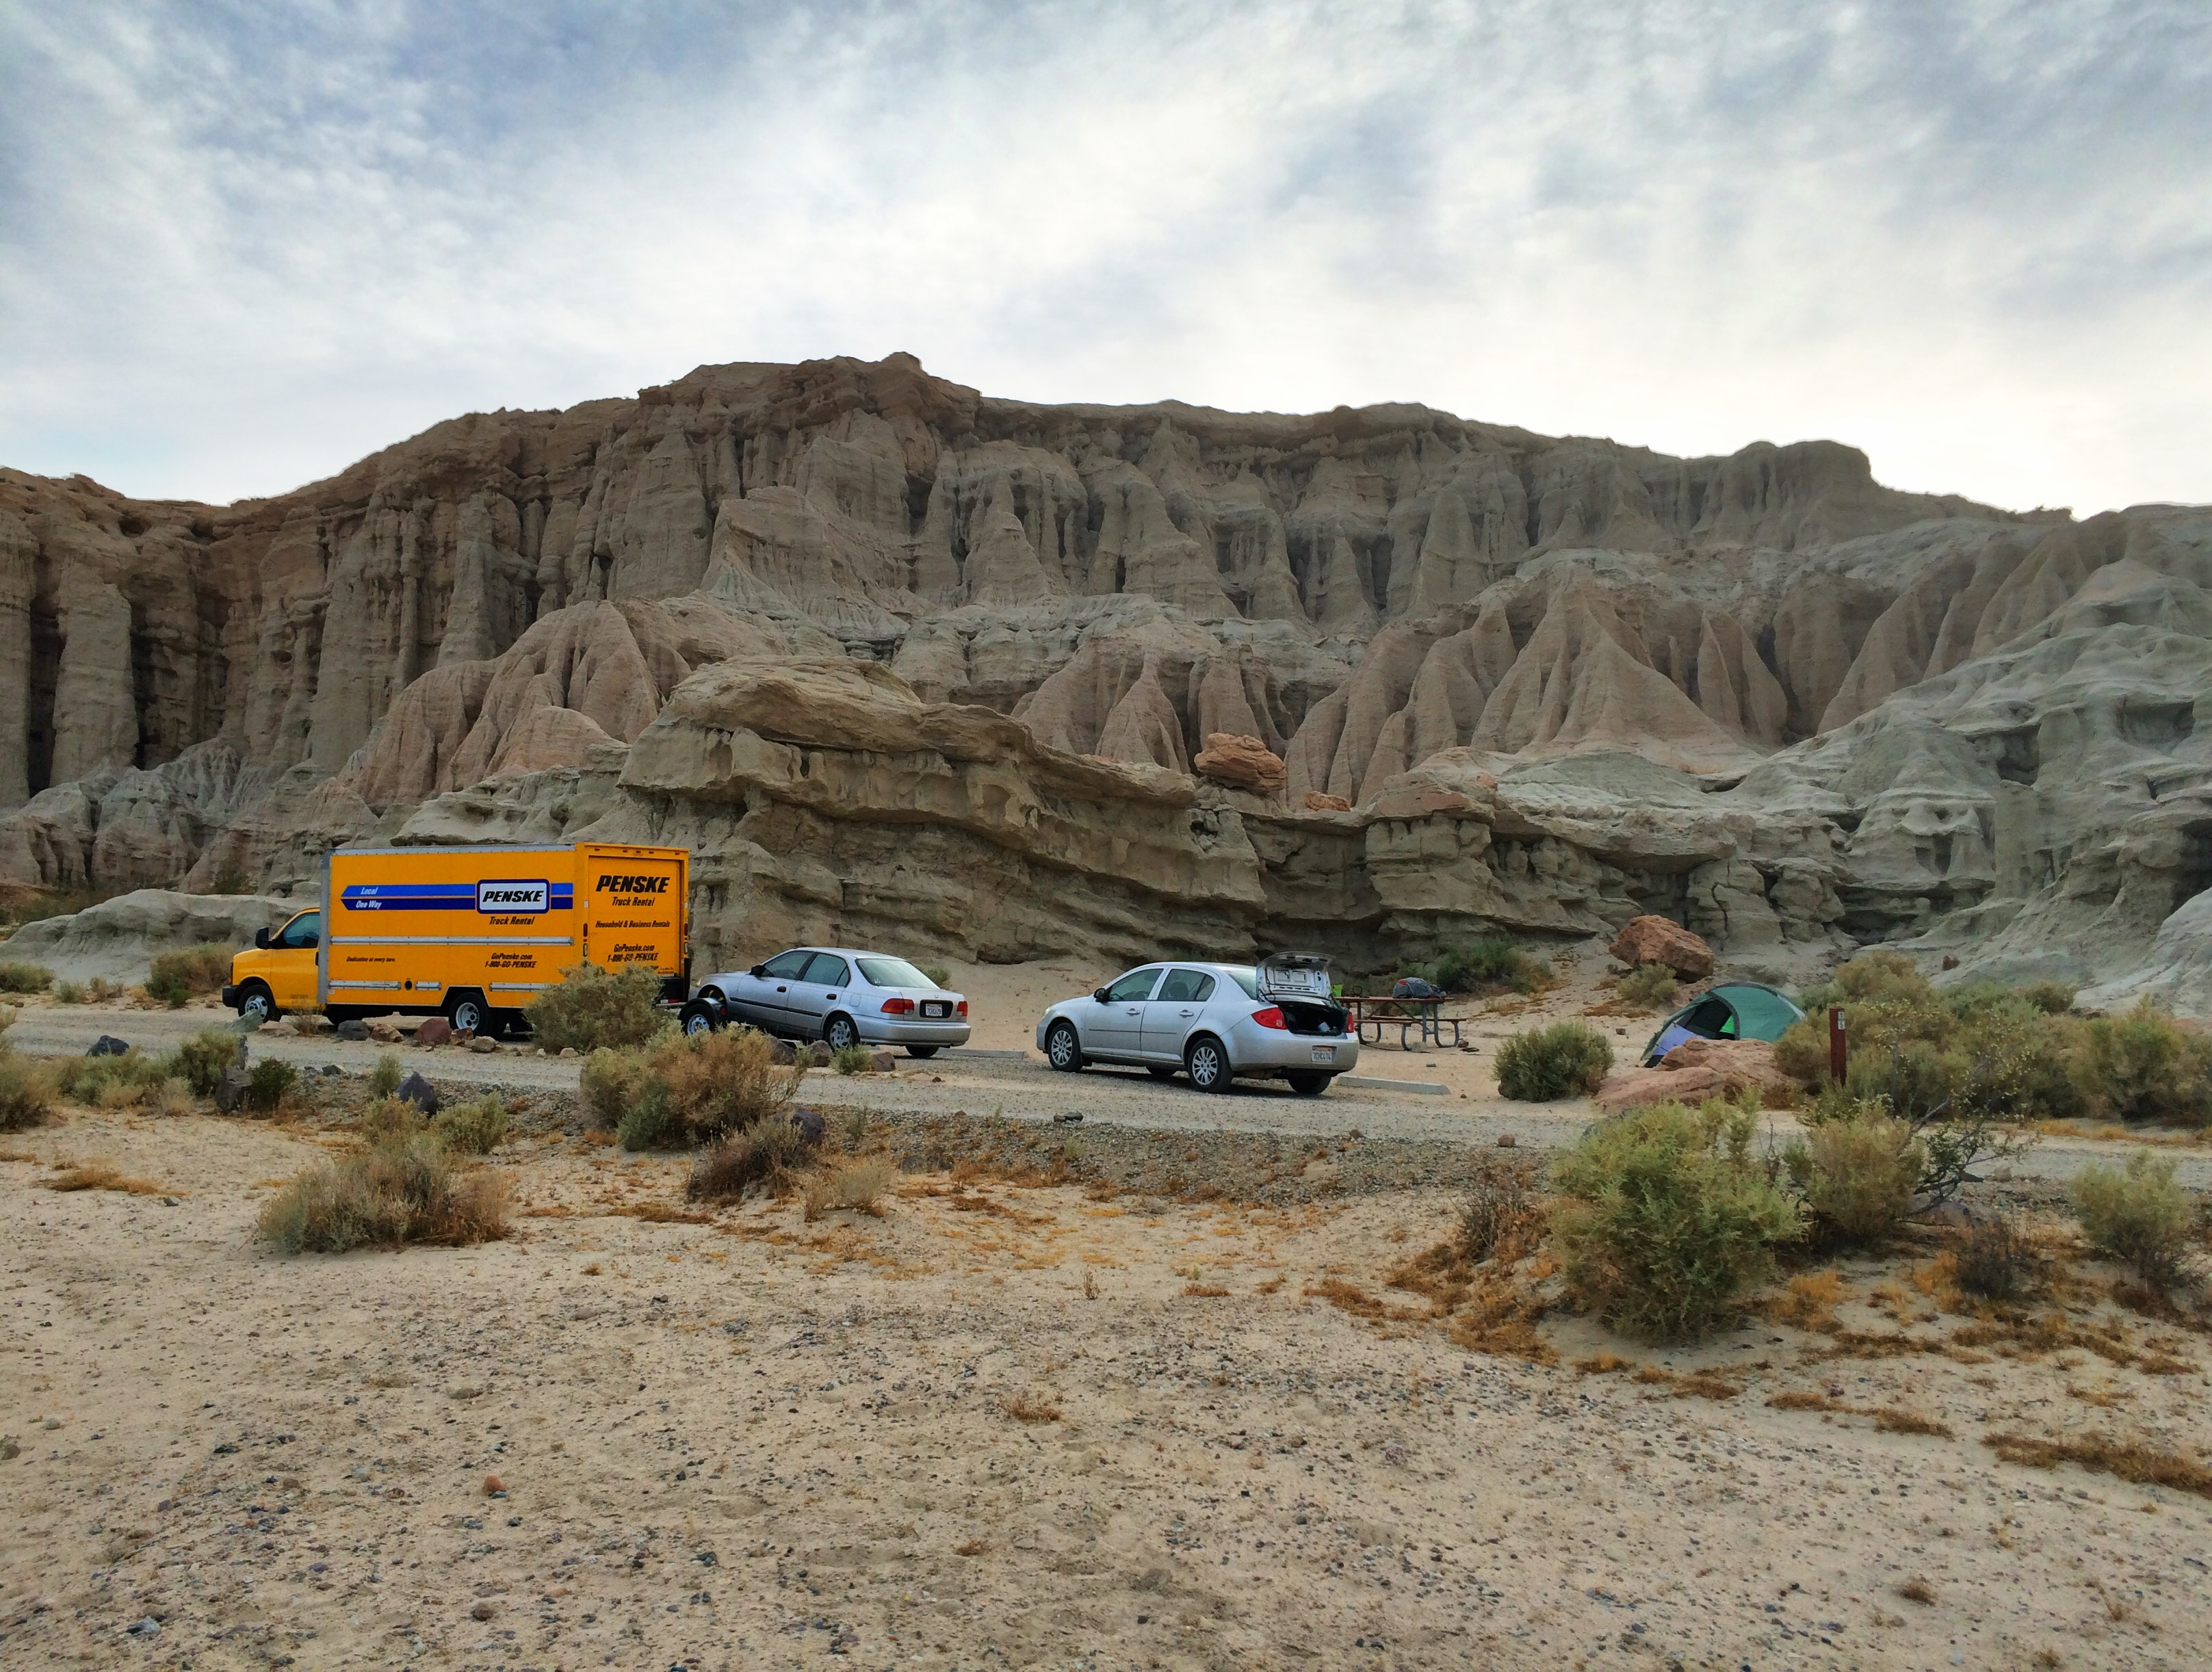 Ricardo Campgrounds at Red Rock Canyon State Park in Cantil, CA. Photo by Clay Duda.